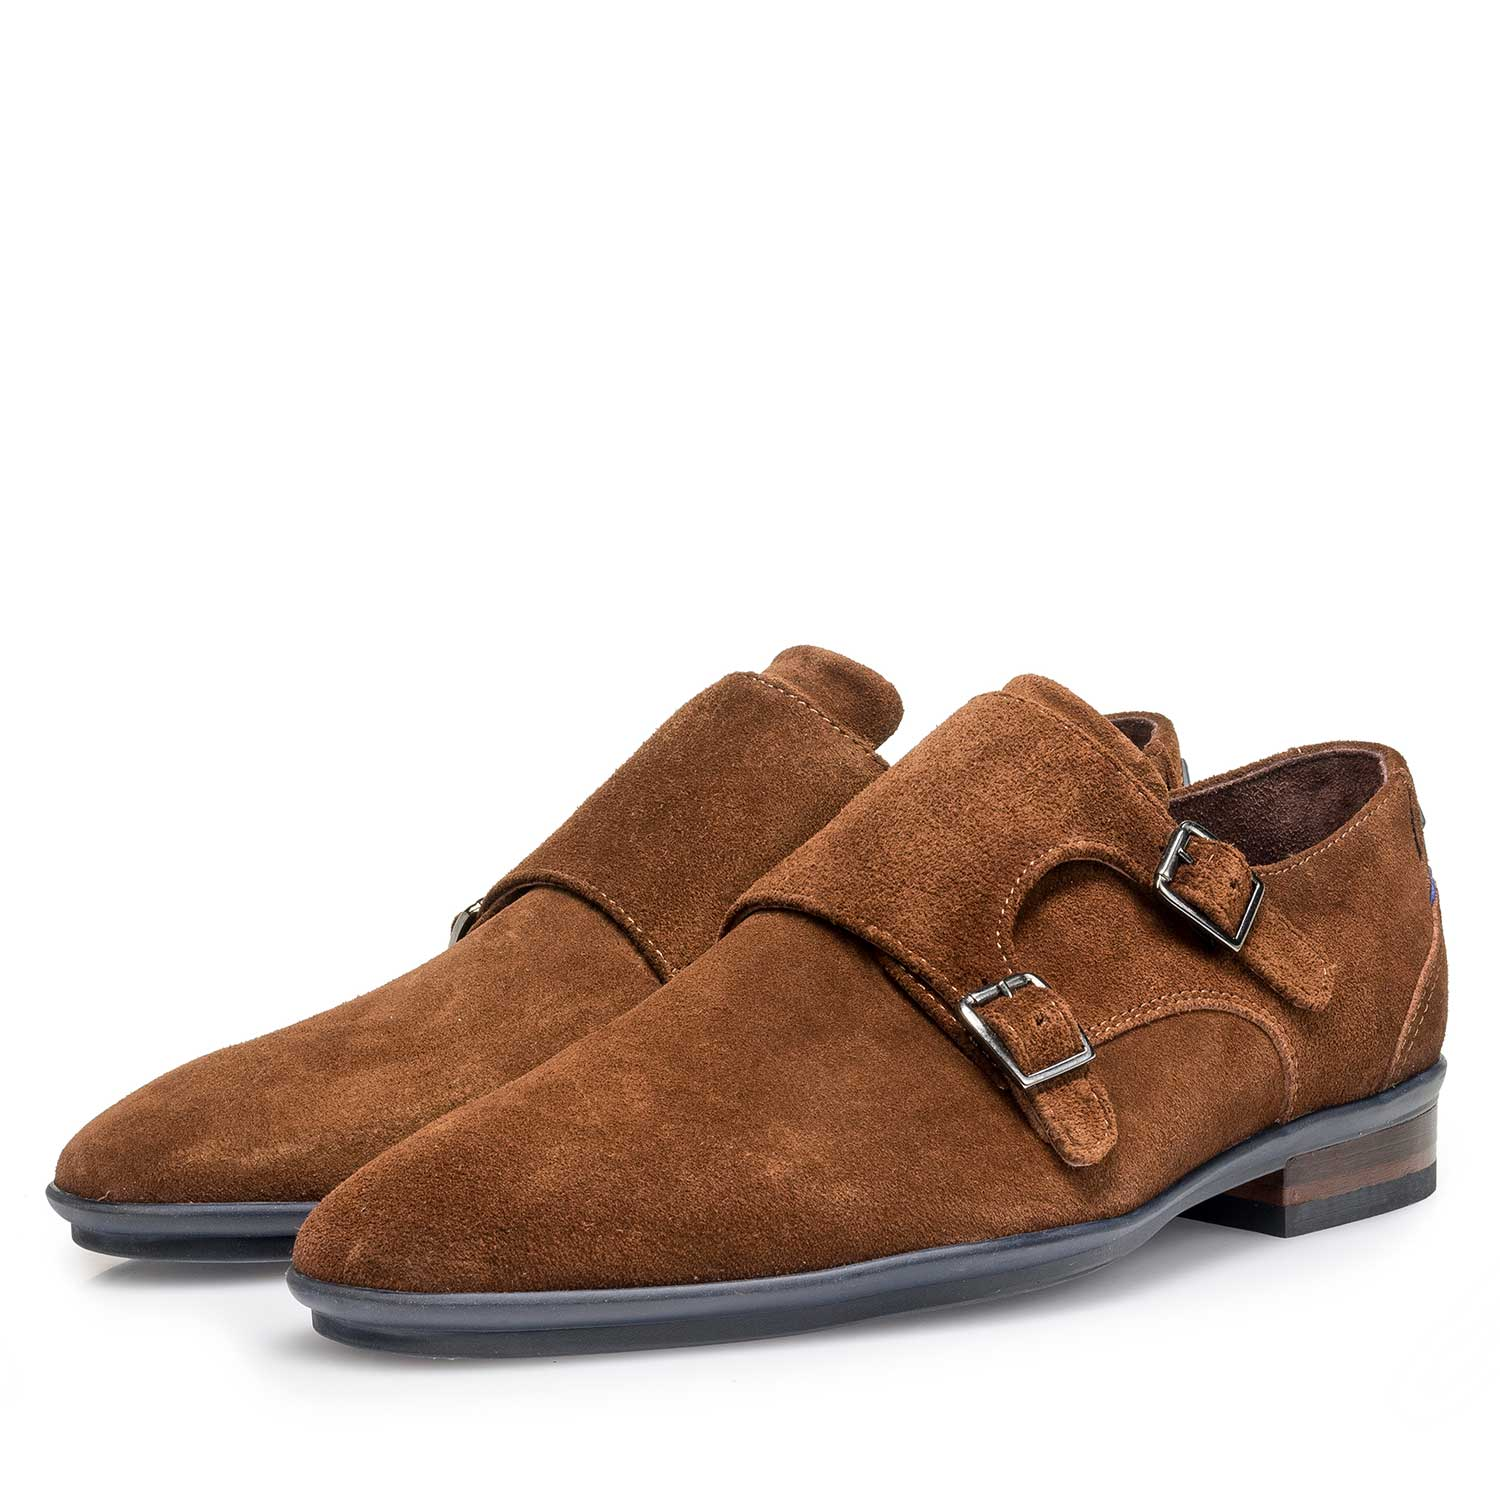 12132/09 - Brown calf suede leather double buckle monk strap